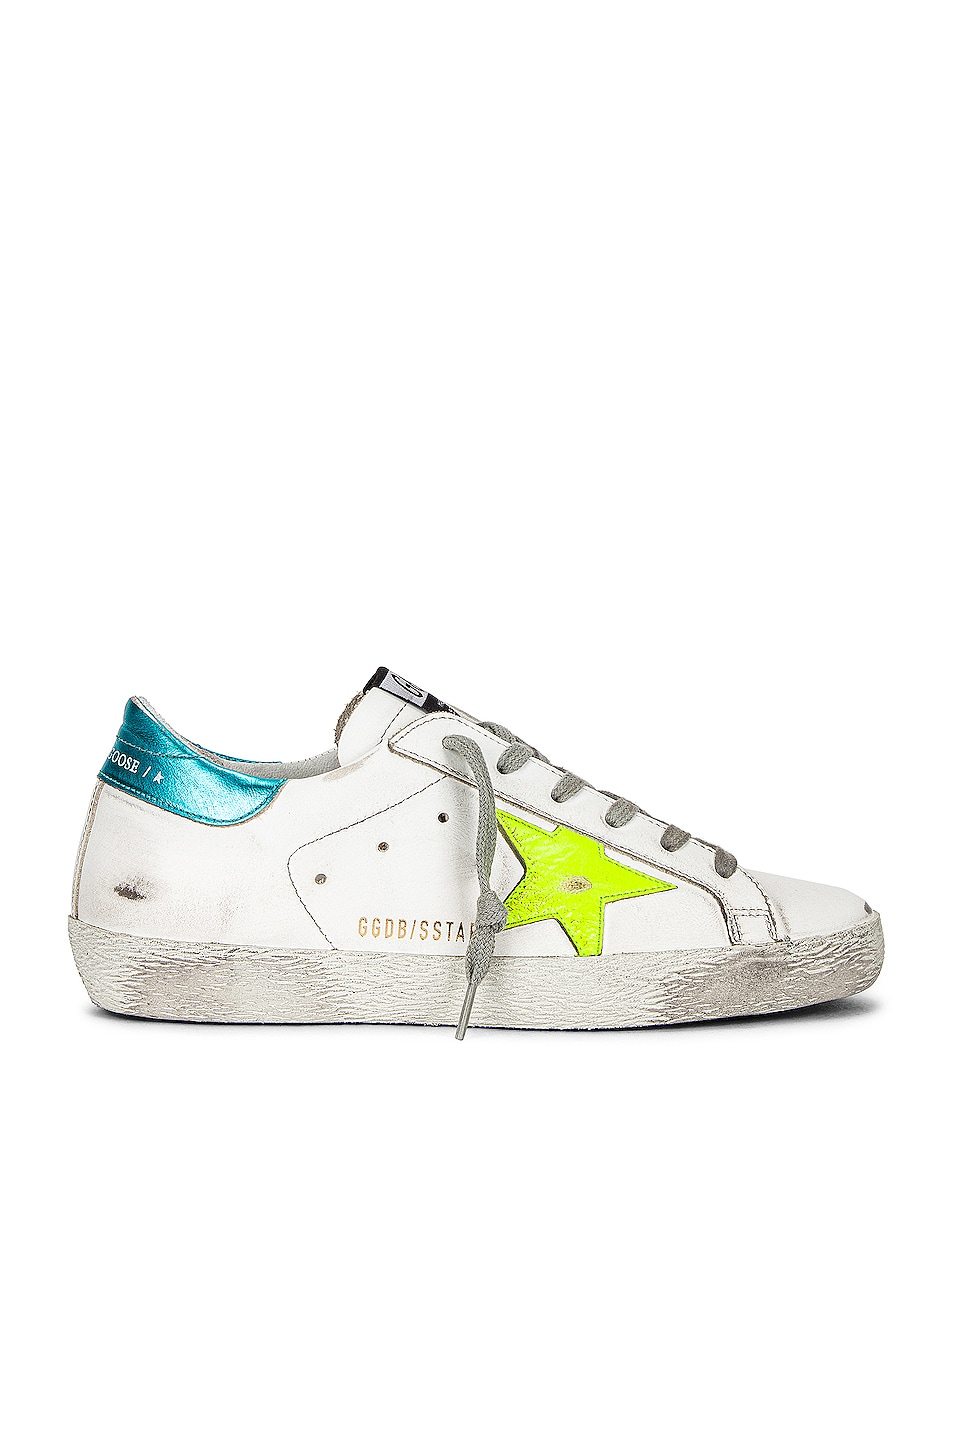 Image 1 of Golden Goose Superstar Sneaker in White, Yellow Fluo, & Turquoise